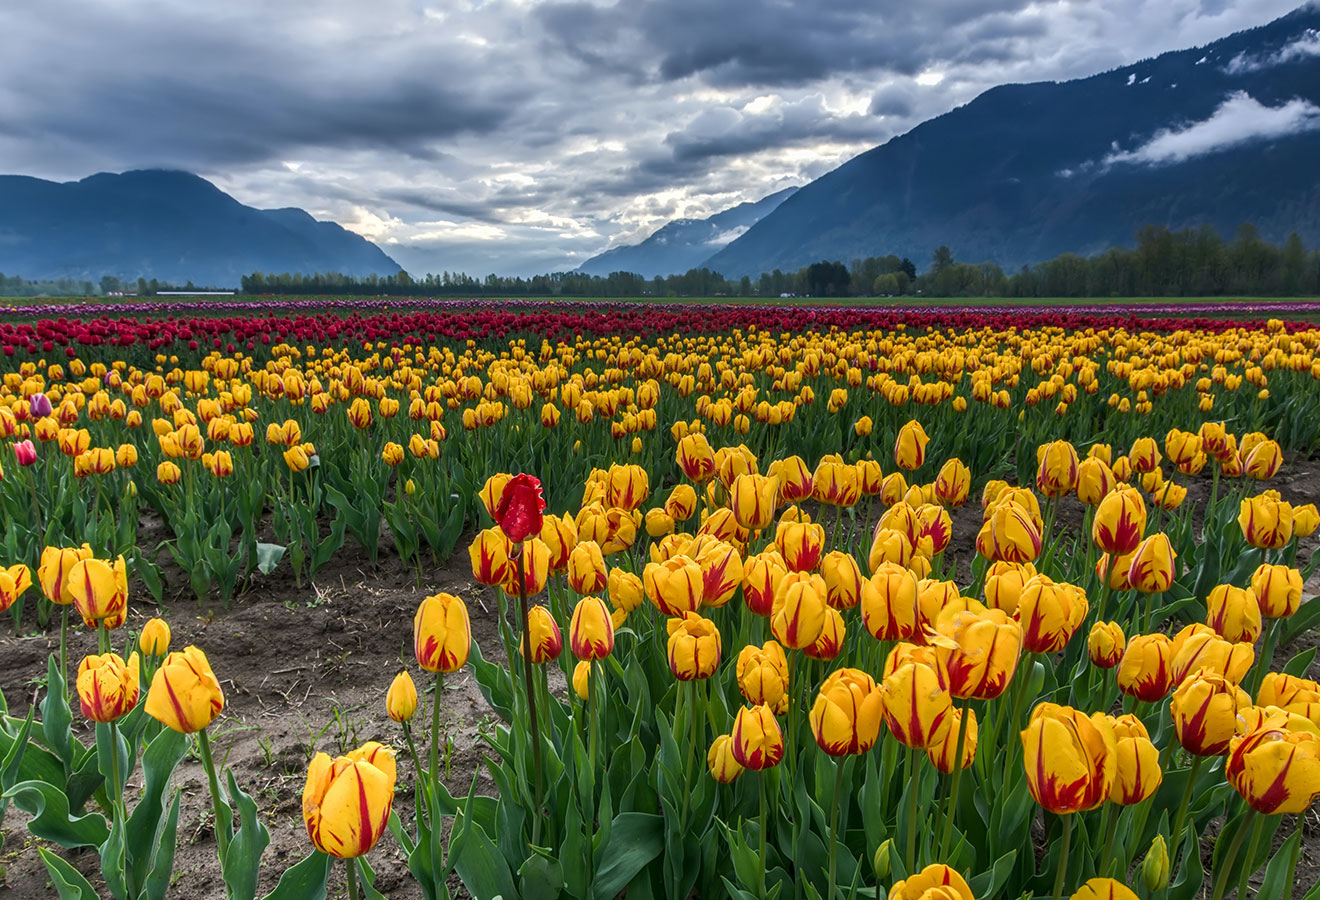 Tulip Mania – What was it and why does it matter today? – Episode 107